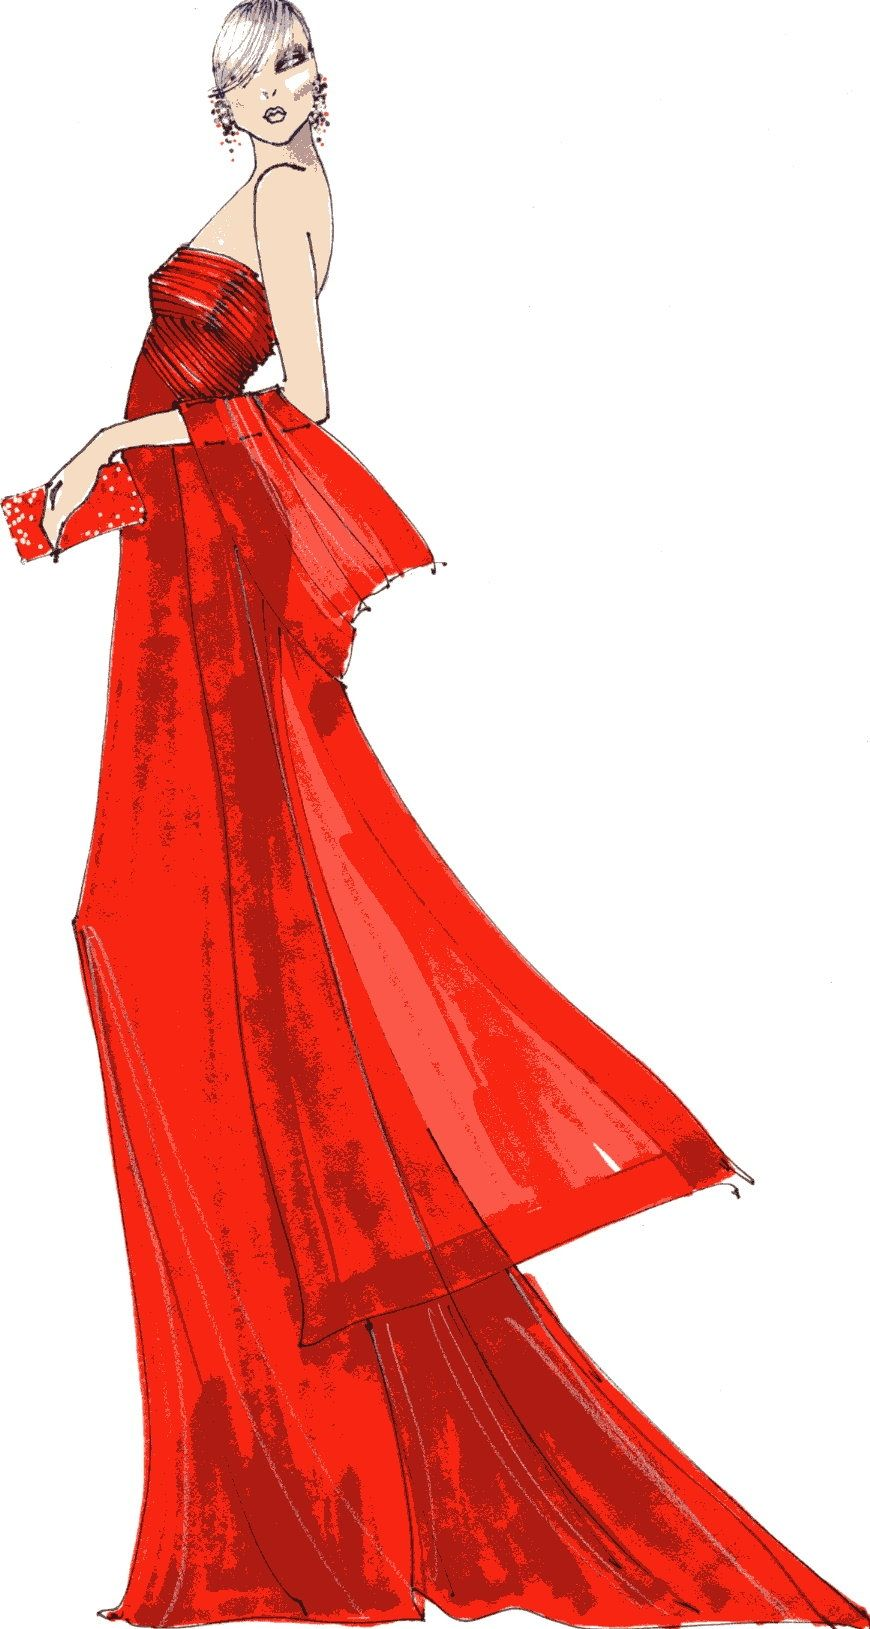 The Heart Truth Fashion Show Red Dress sketch by Wayne Clark, 2009.